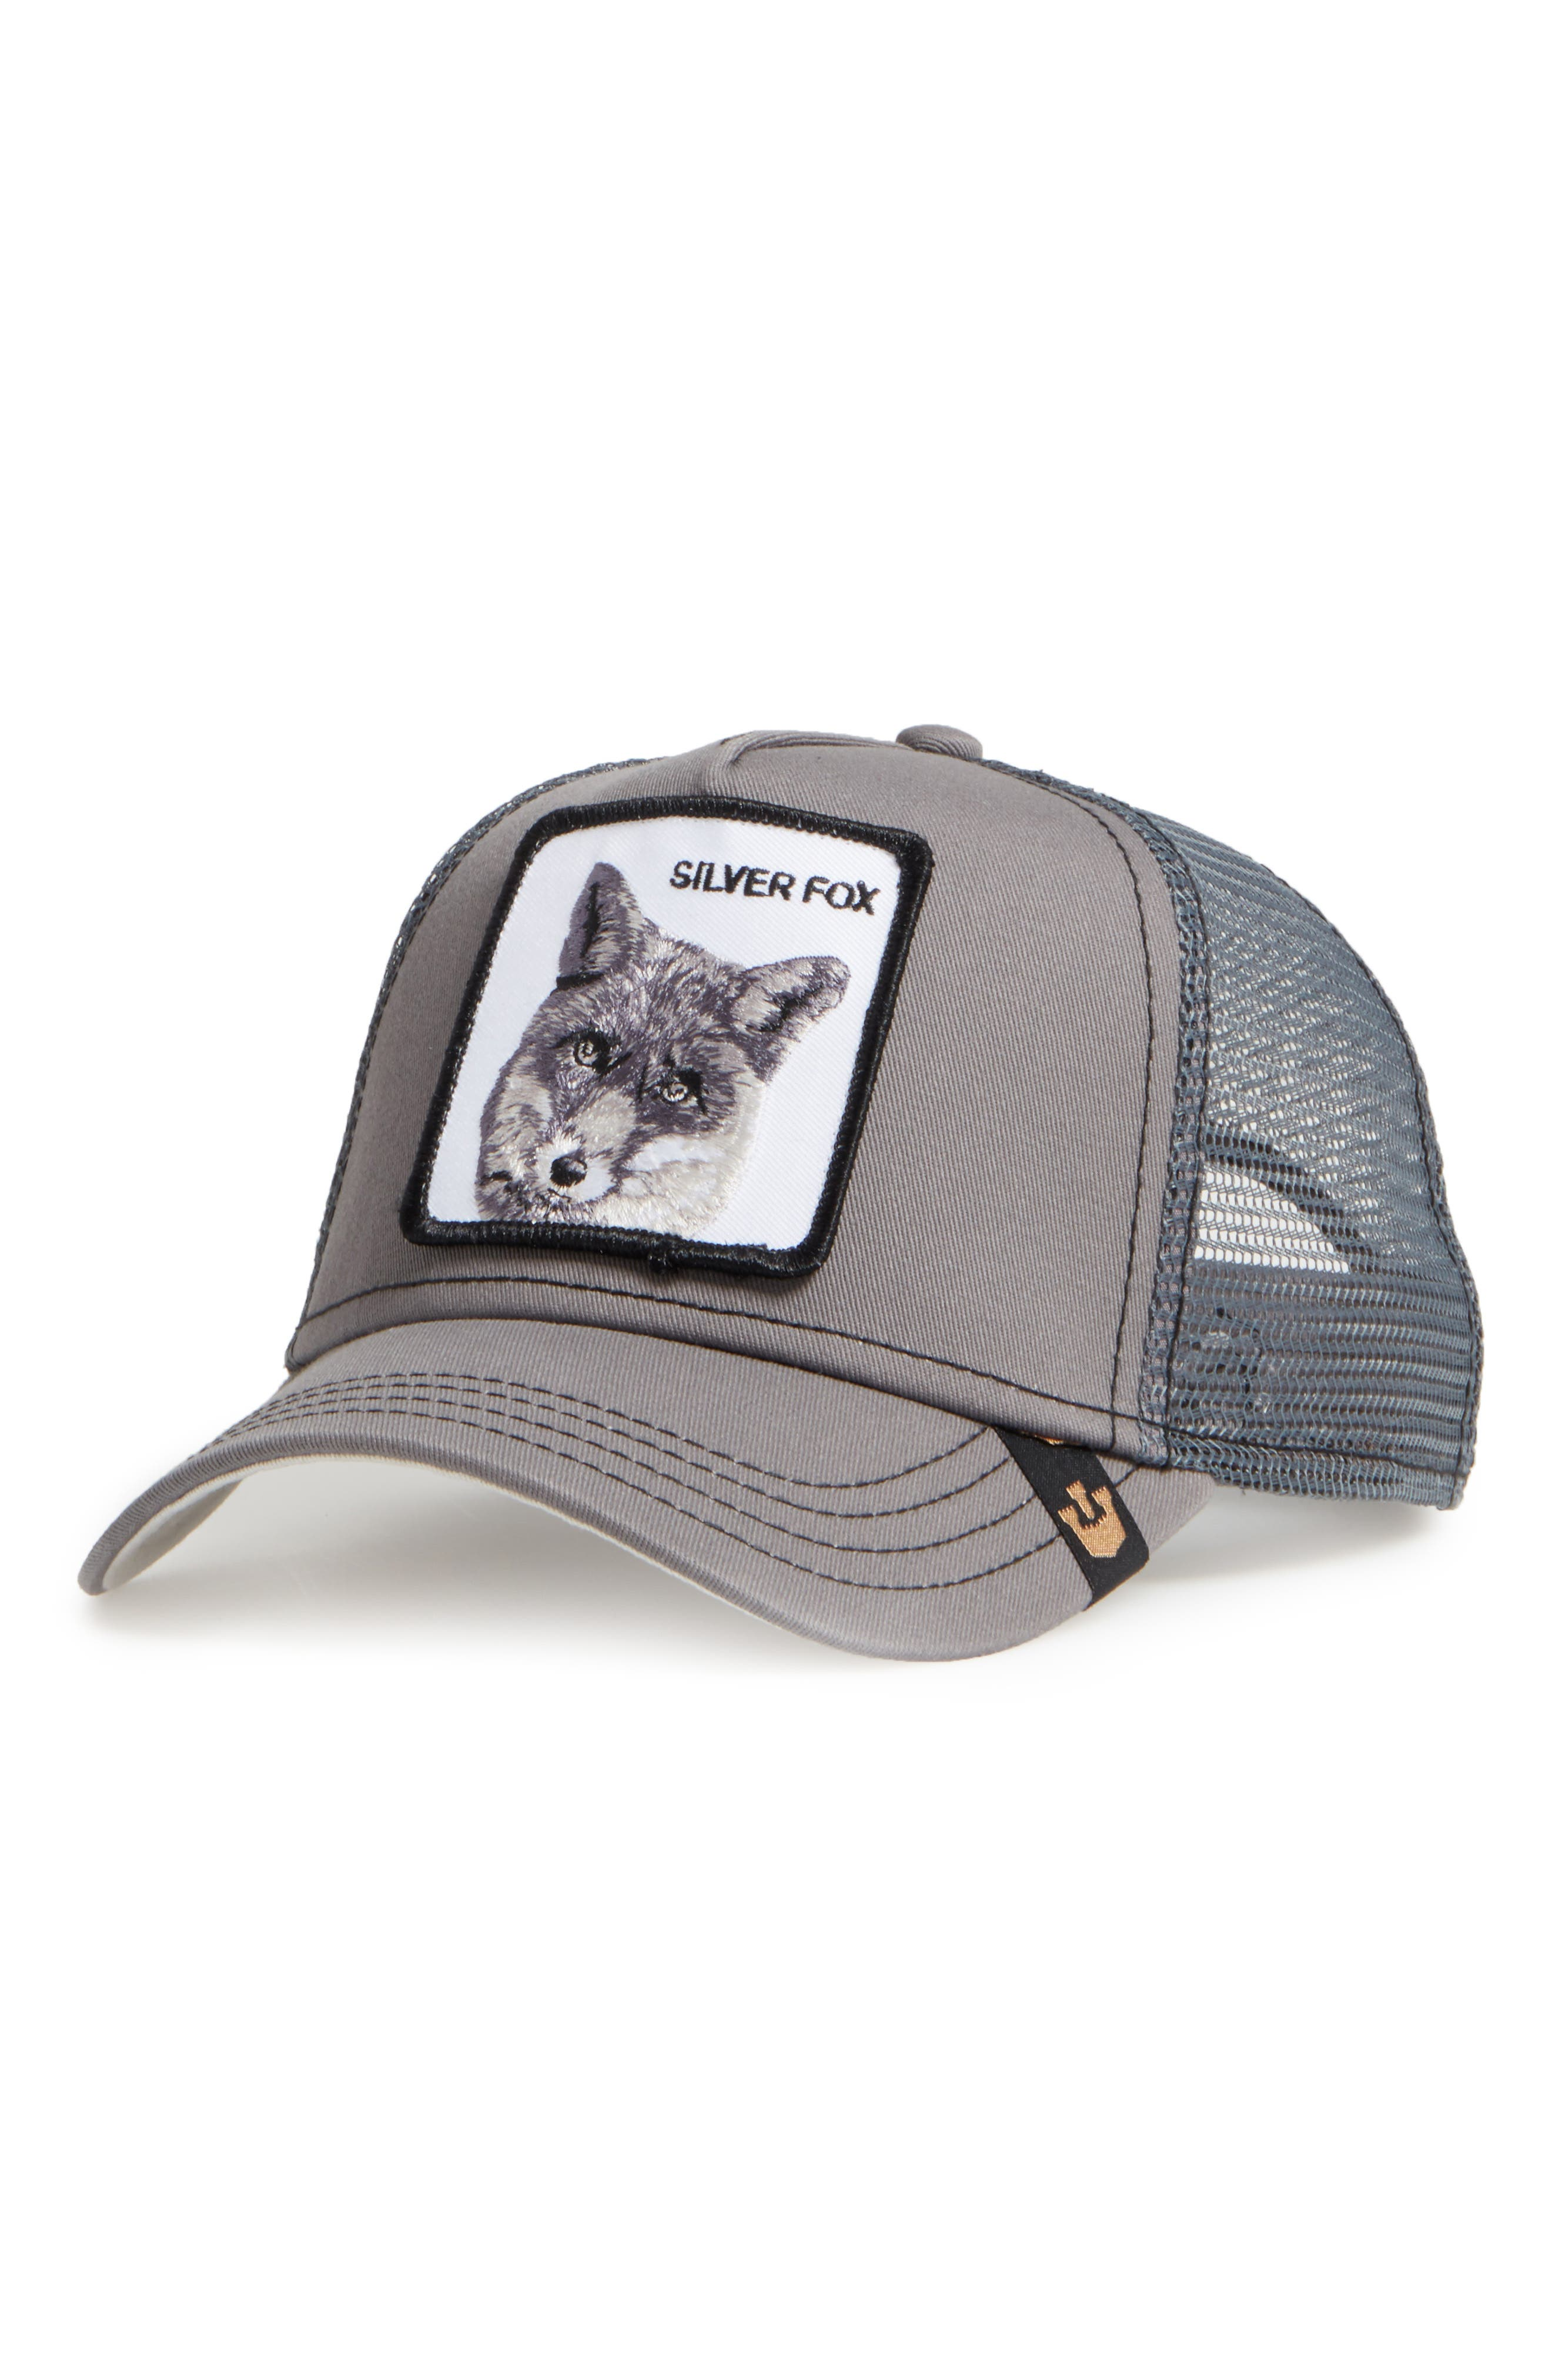 'Silver Fox' Trucker Hat,                             Main thumbnail 1, color,                             CHARCOAL